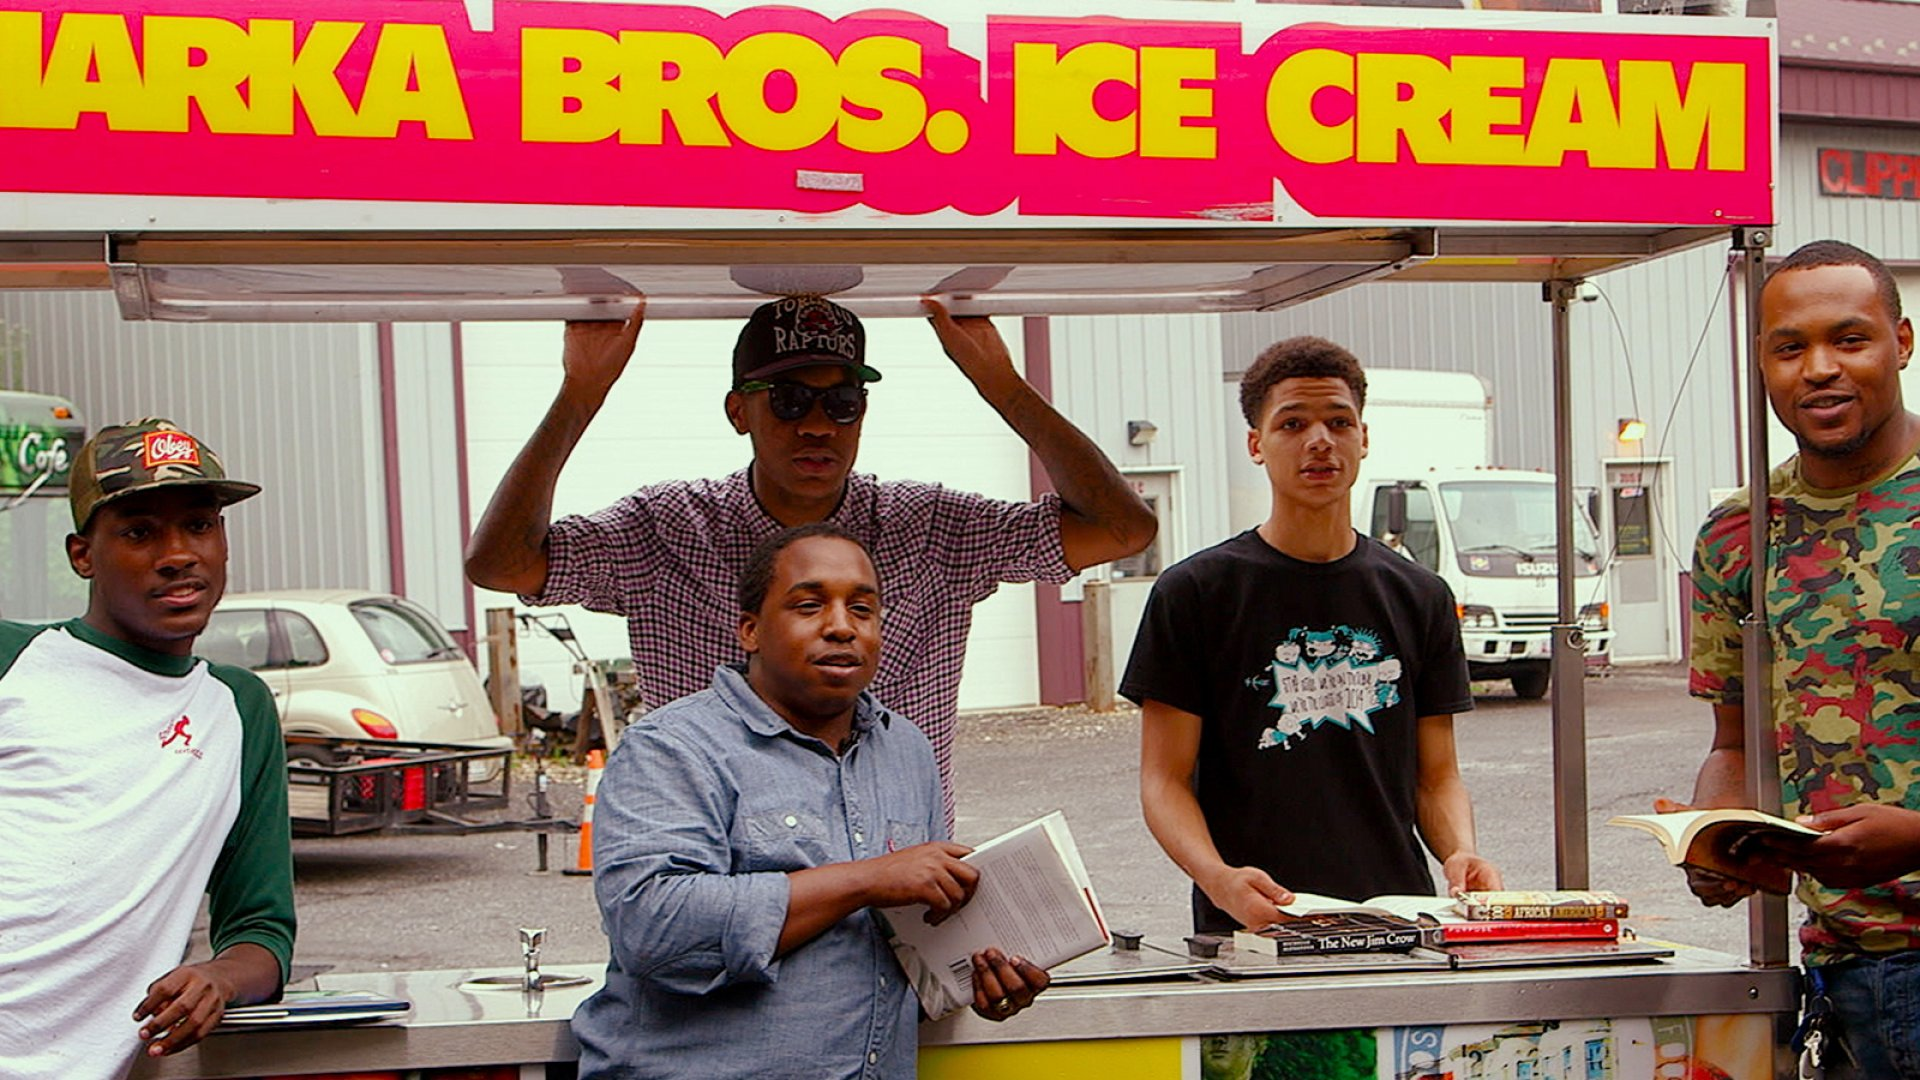 """Taharka Bros. Ice Cream, based in Baltimore, raised $28,000 in 29 days on Kickstarter, thanks to their savvy in landing celebrity endorsements. """"A Dream Preferred,"""" one of three short films on entrepreneurship released today, tells the tale of how they did it."""